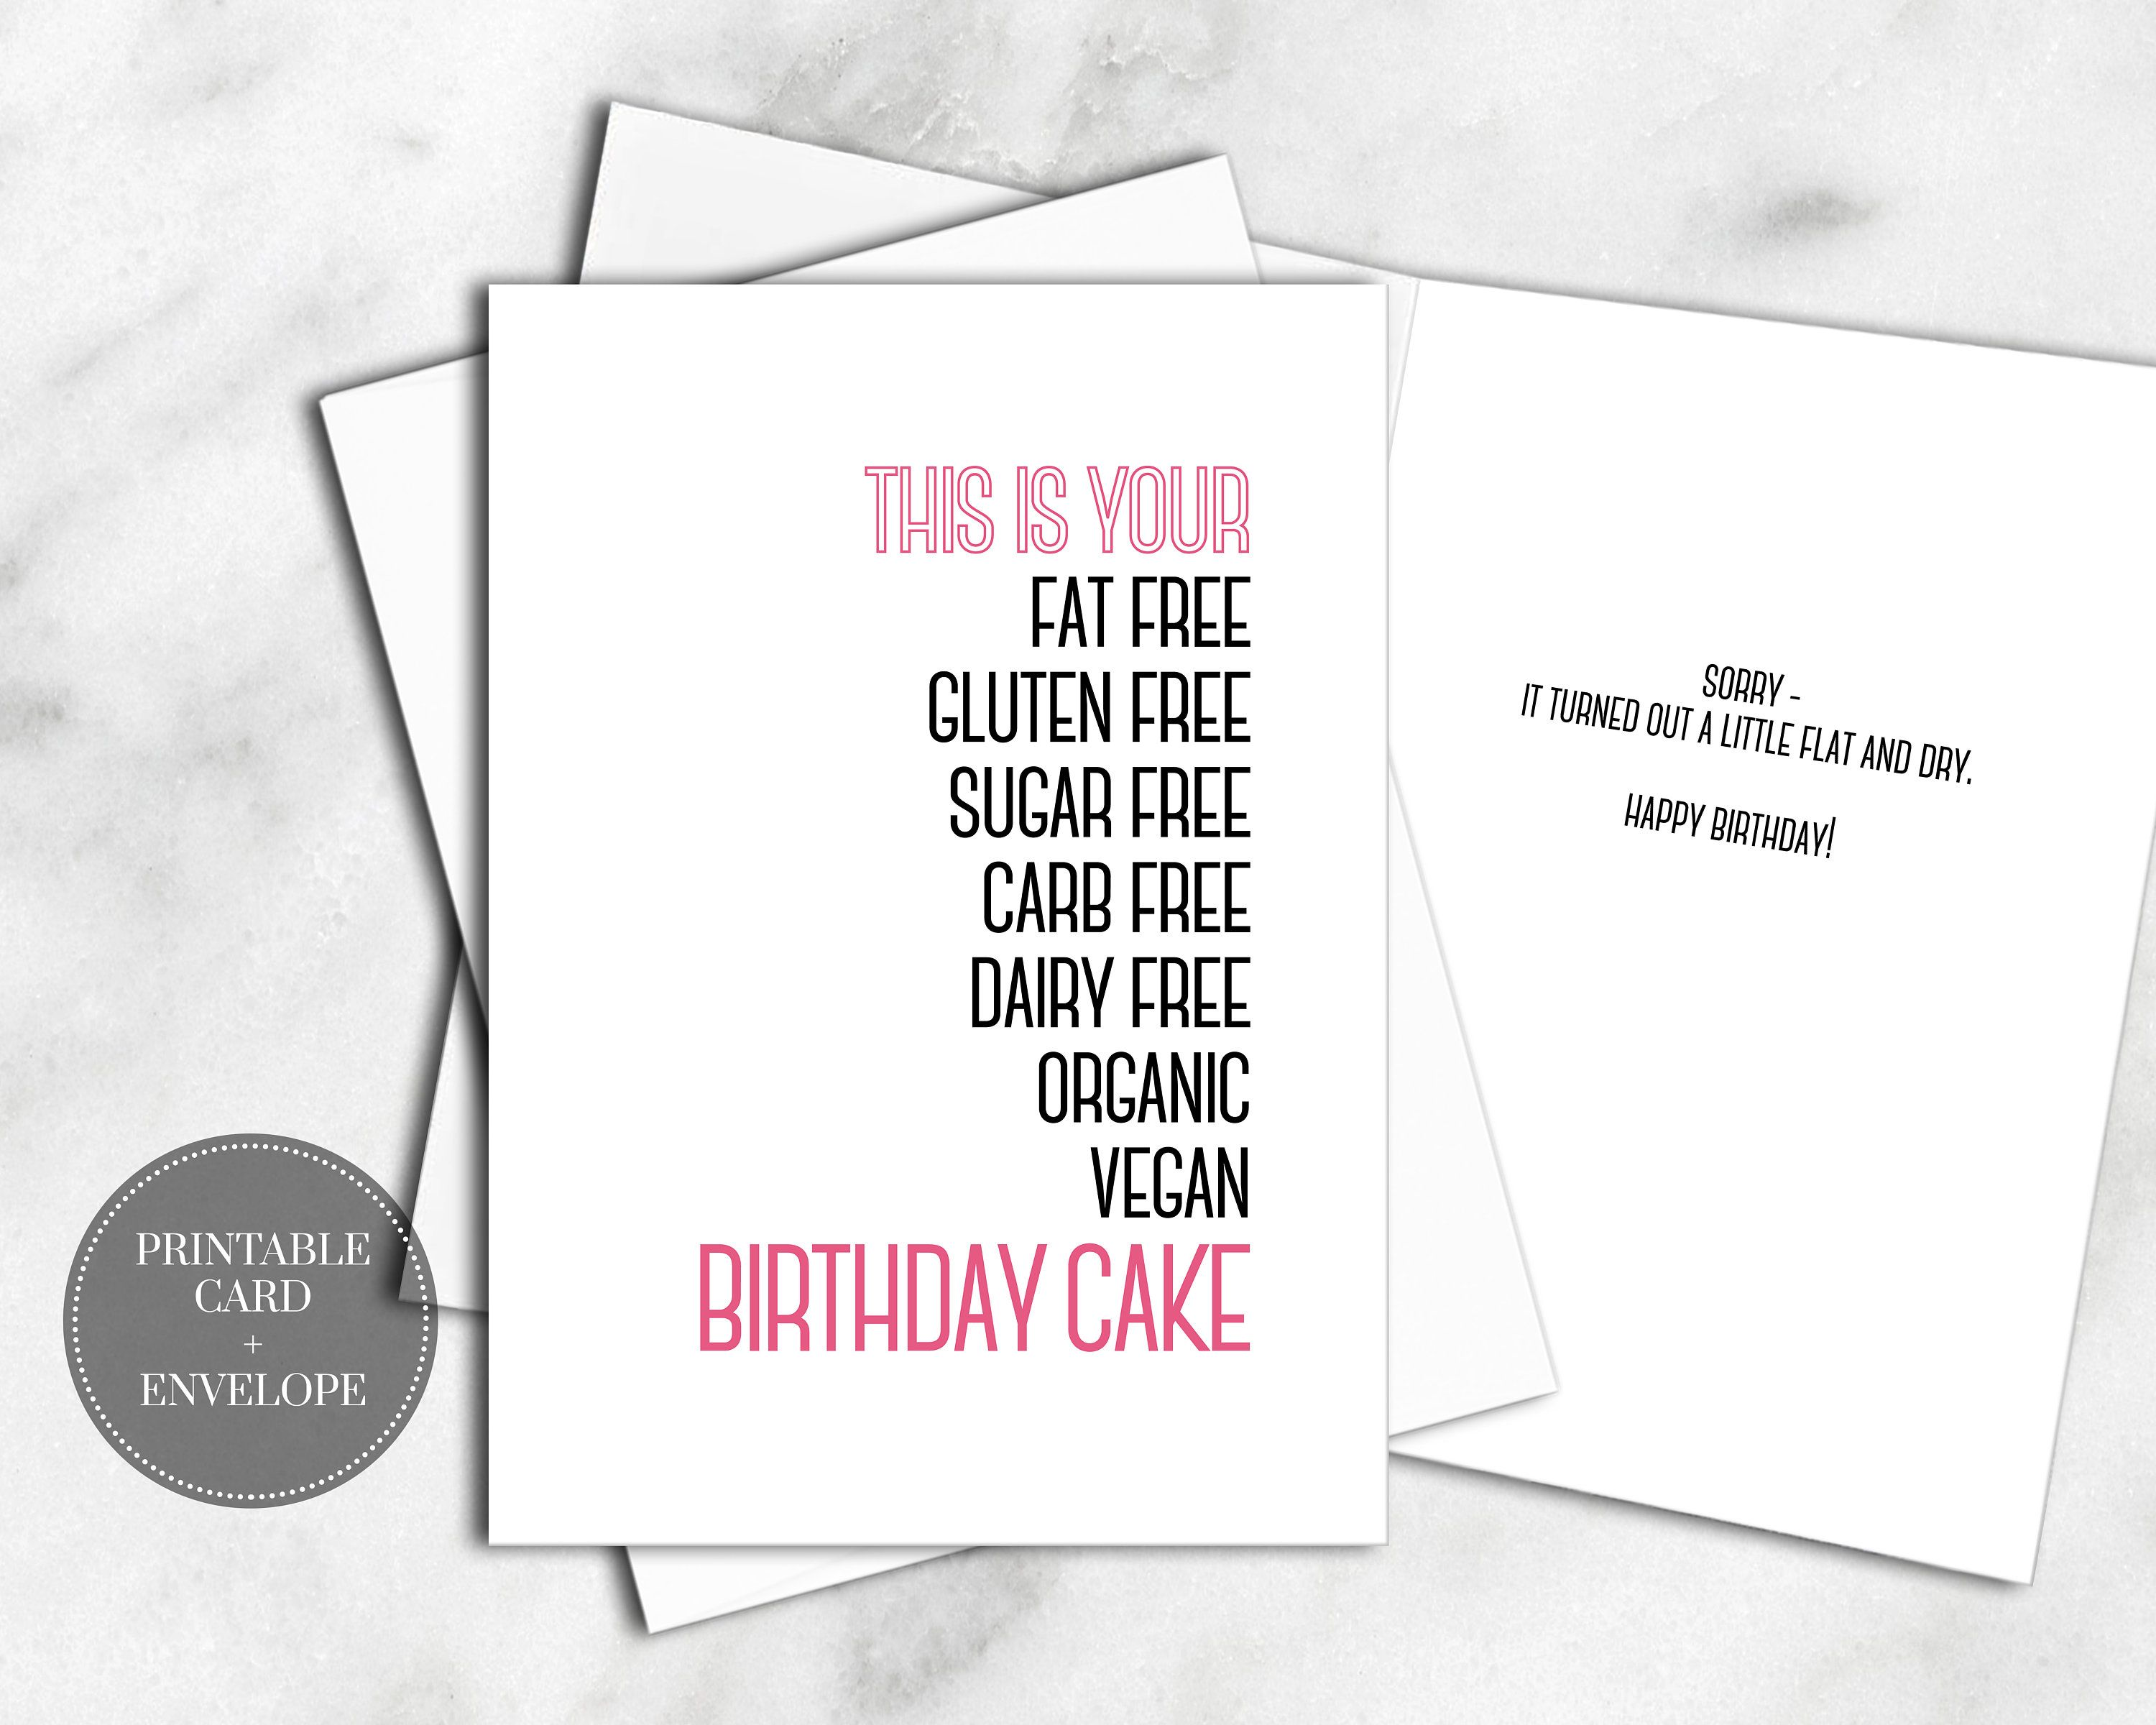 photo regarding Free Printable Funny Birthday Cards for Adults called PRINTABLE Humorous Exercise routine Birthday Card for Her Instantaneous